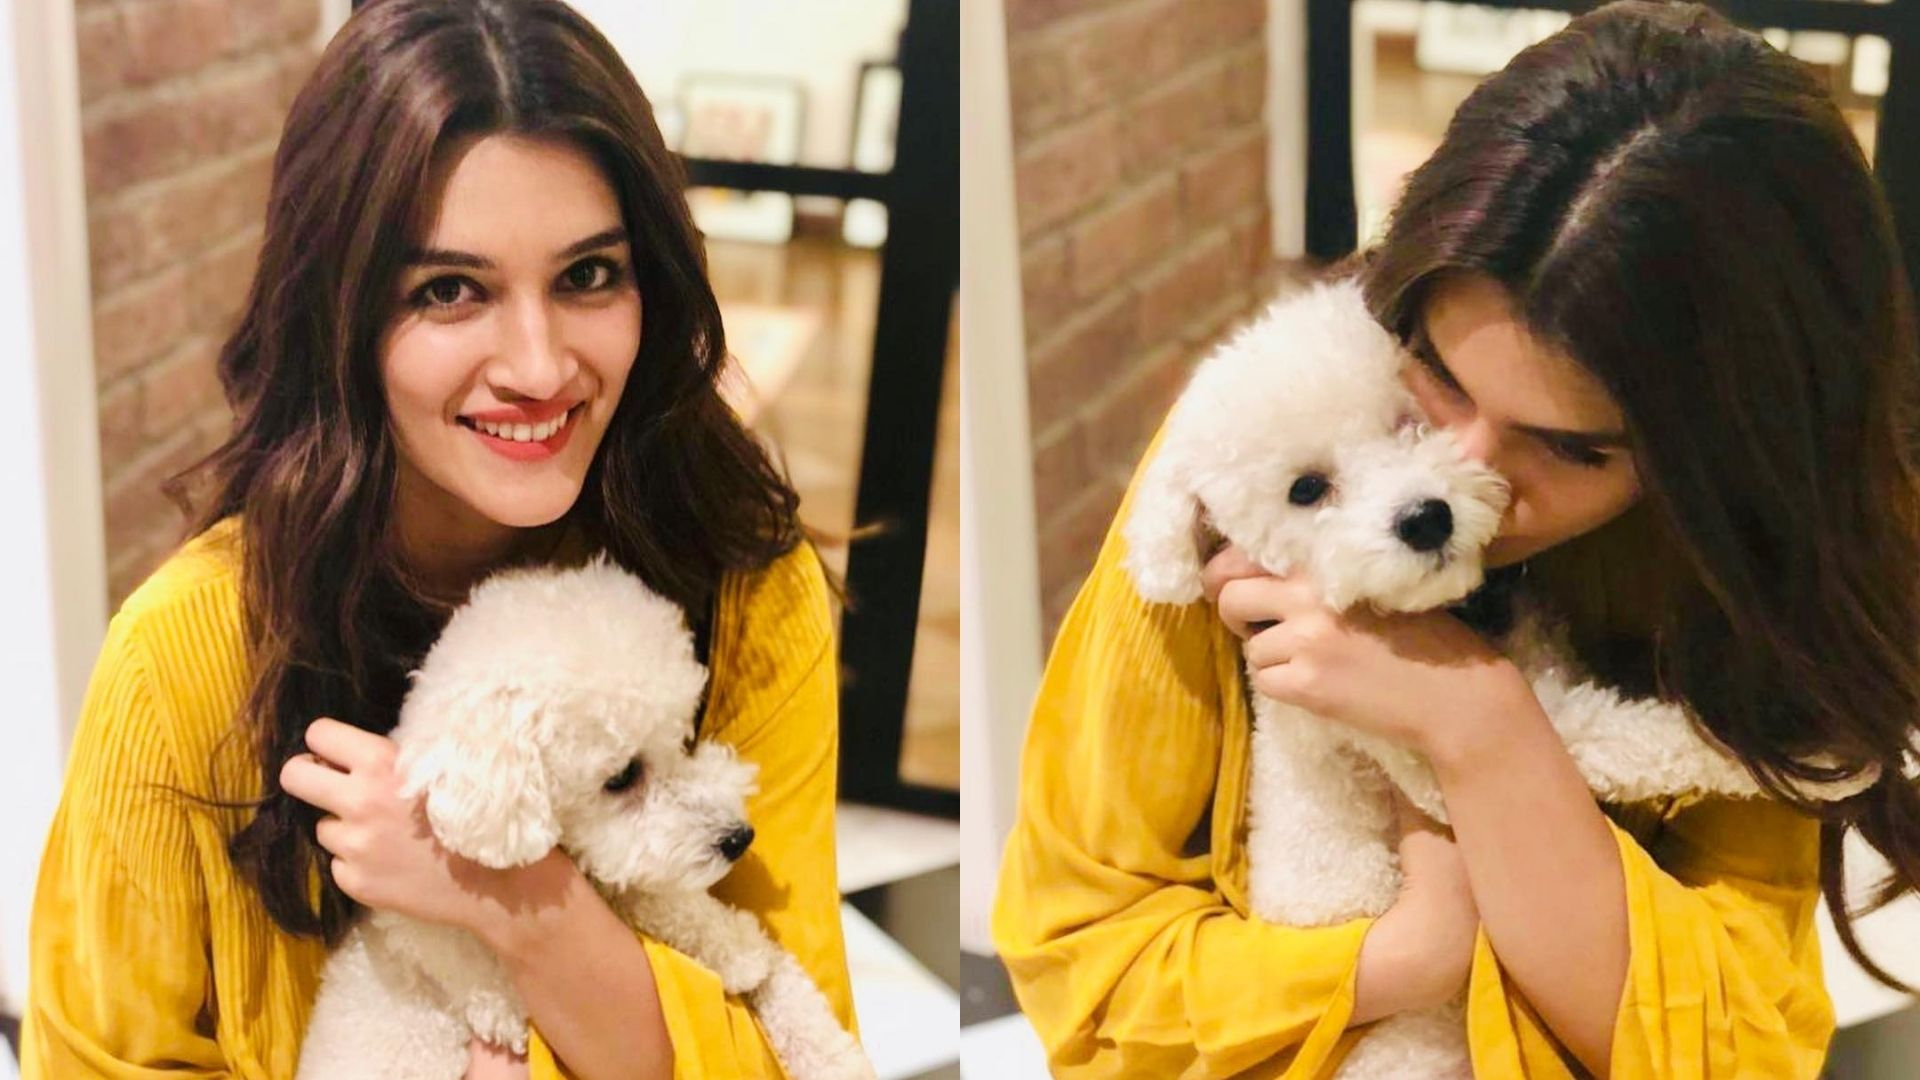 Kriti Sanon's Adorable Pictures With Her Dogs Prove She's A Doting Fur Mum